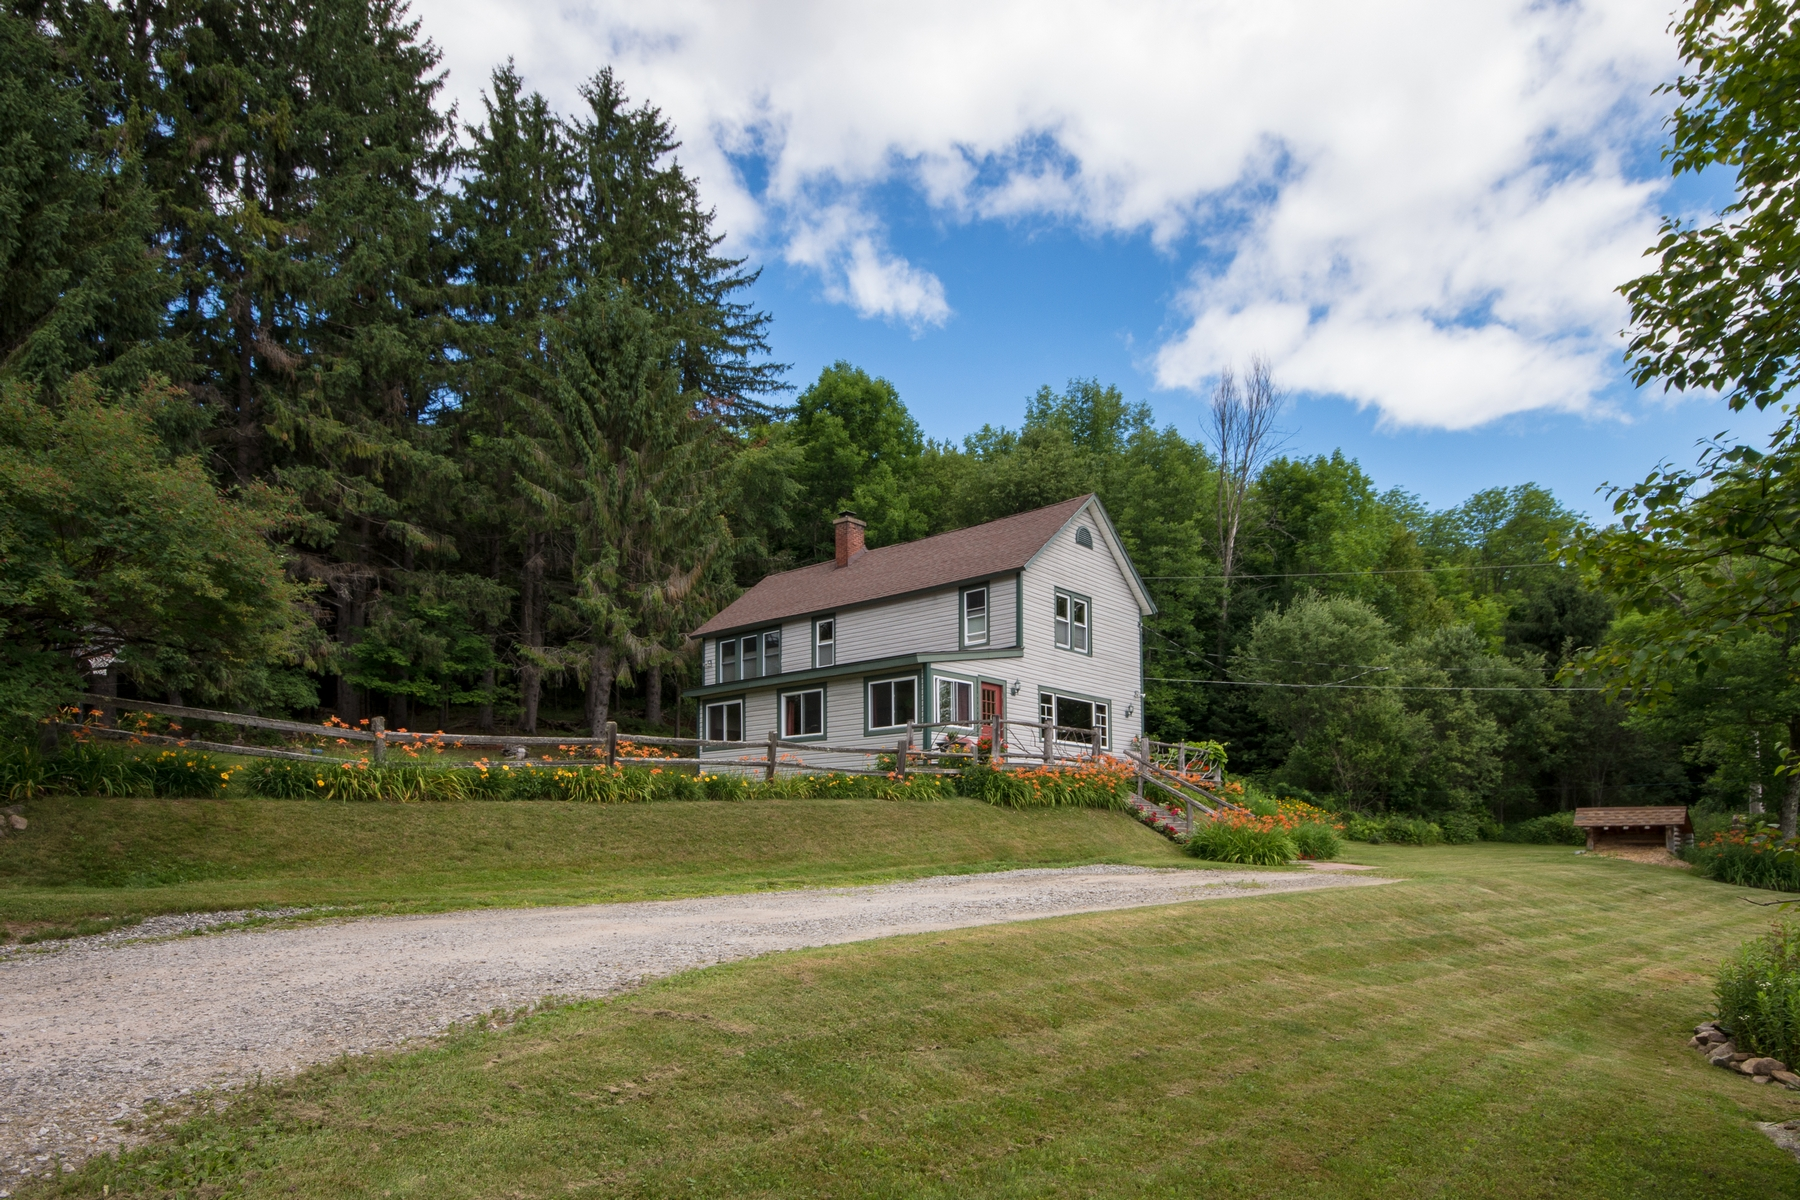 Single Family Home for Sale at Historic Mountain View Home 635 County Route 47 Saranac Lake, New York 12983 United States